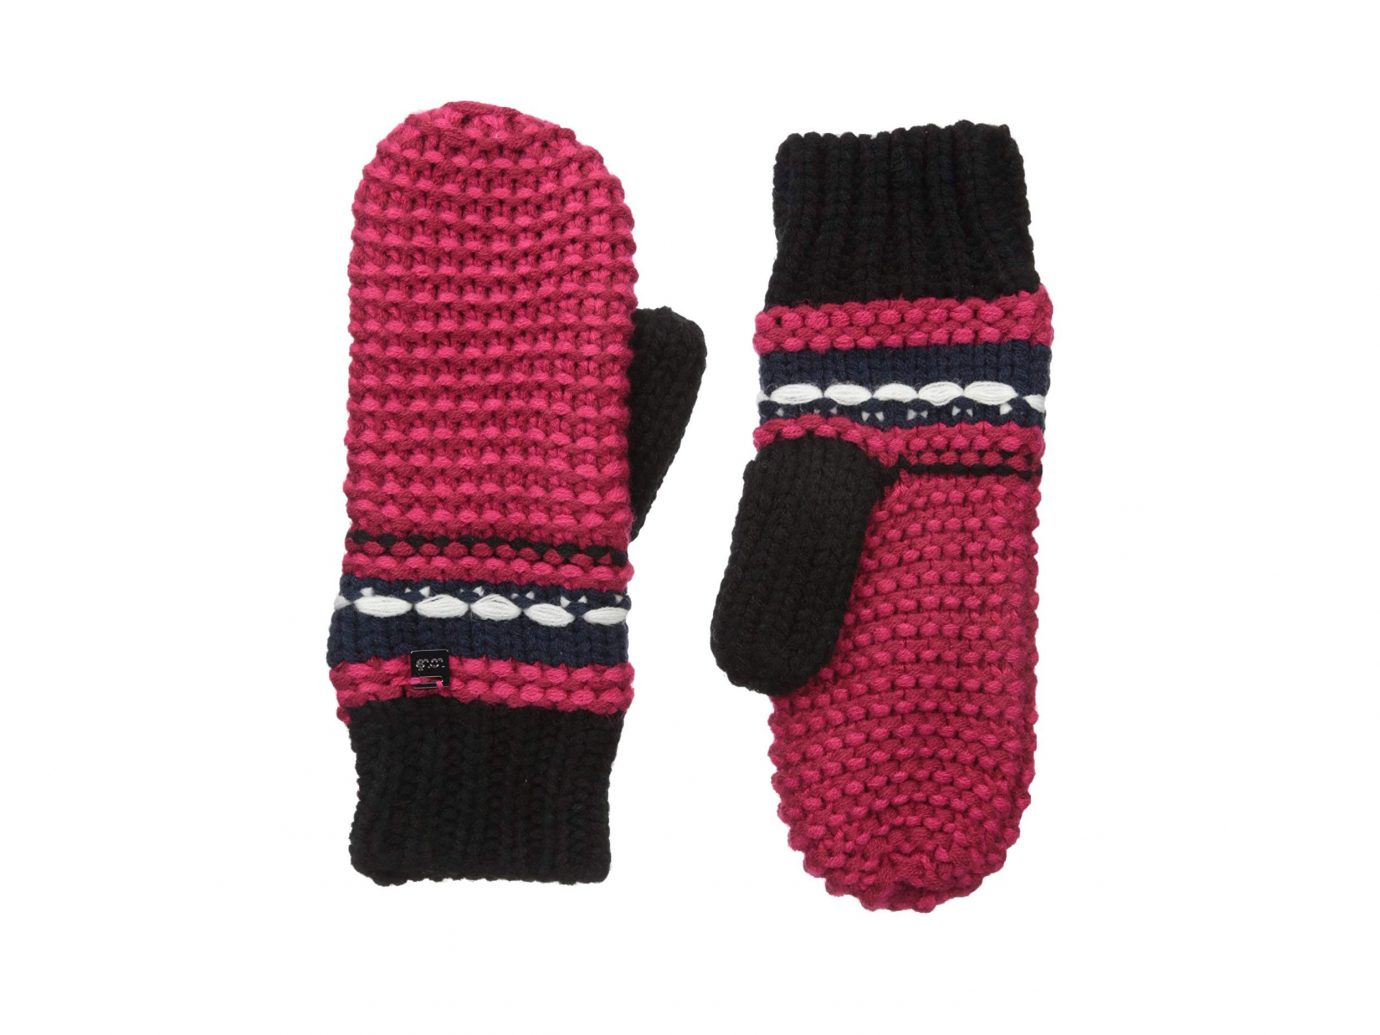 Buy Lole Stripe Mittens on Amazon